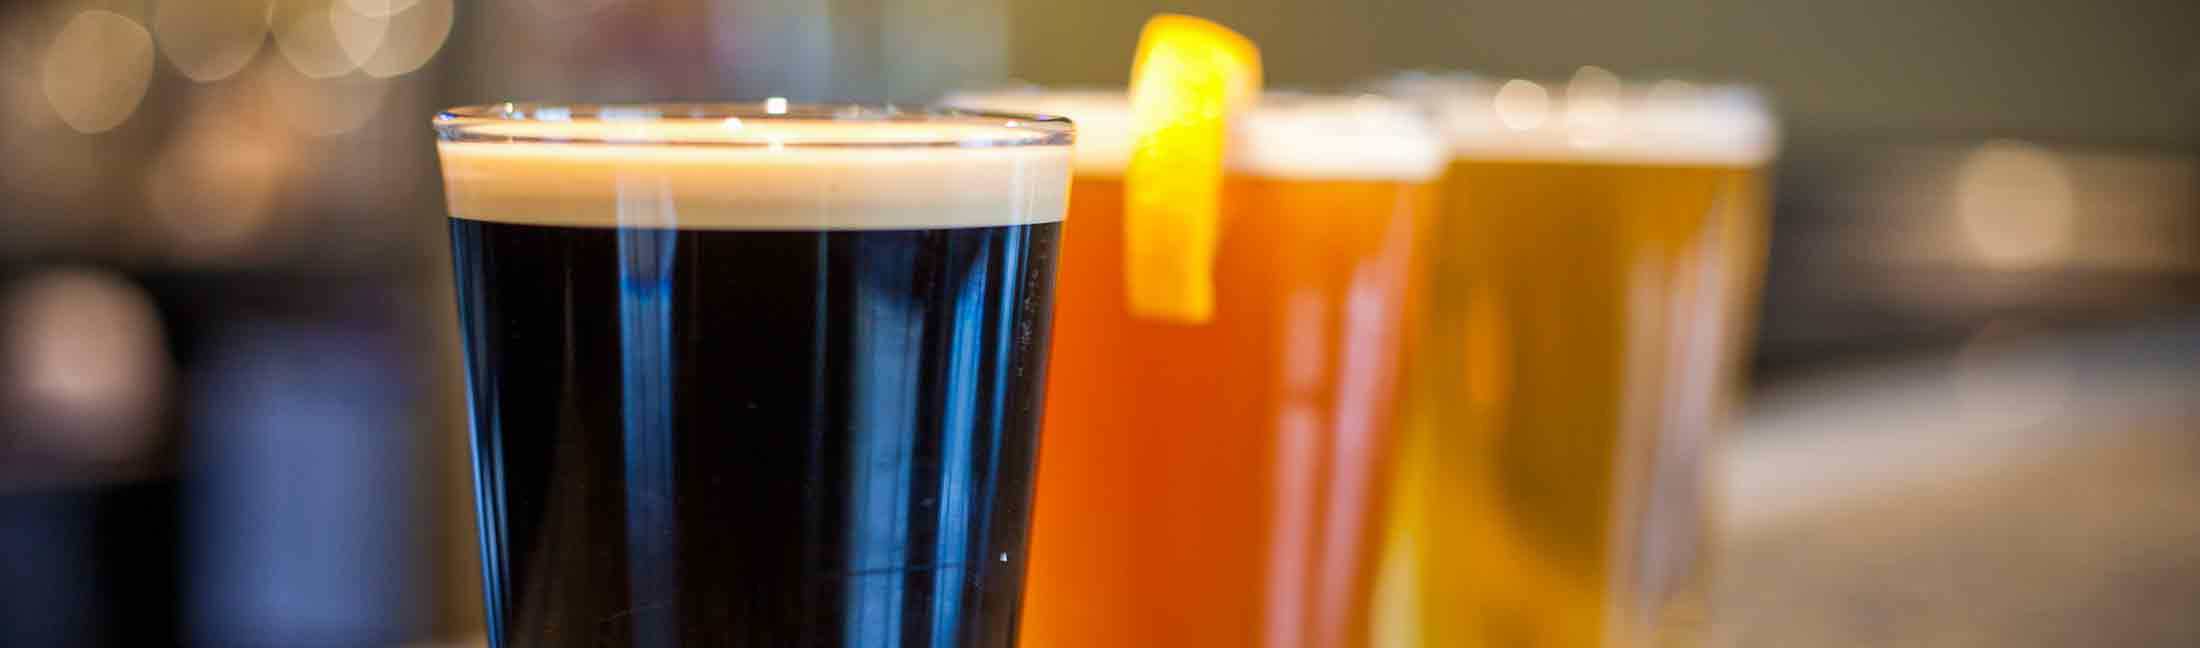 Breweries in Missoula, Montana